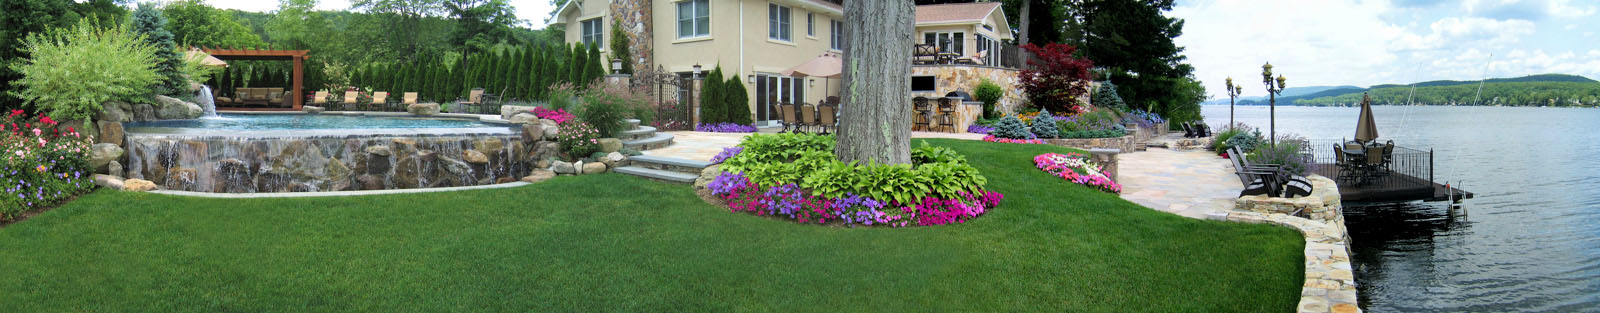 infinity pool and pool landscaping - nj